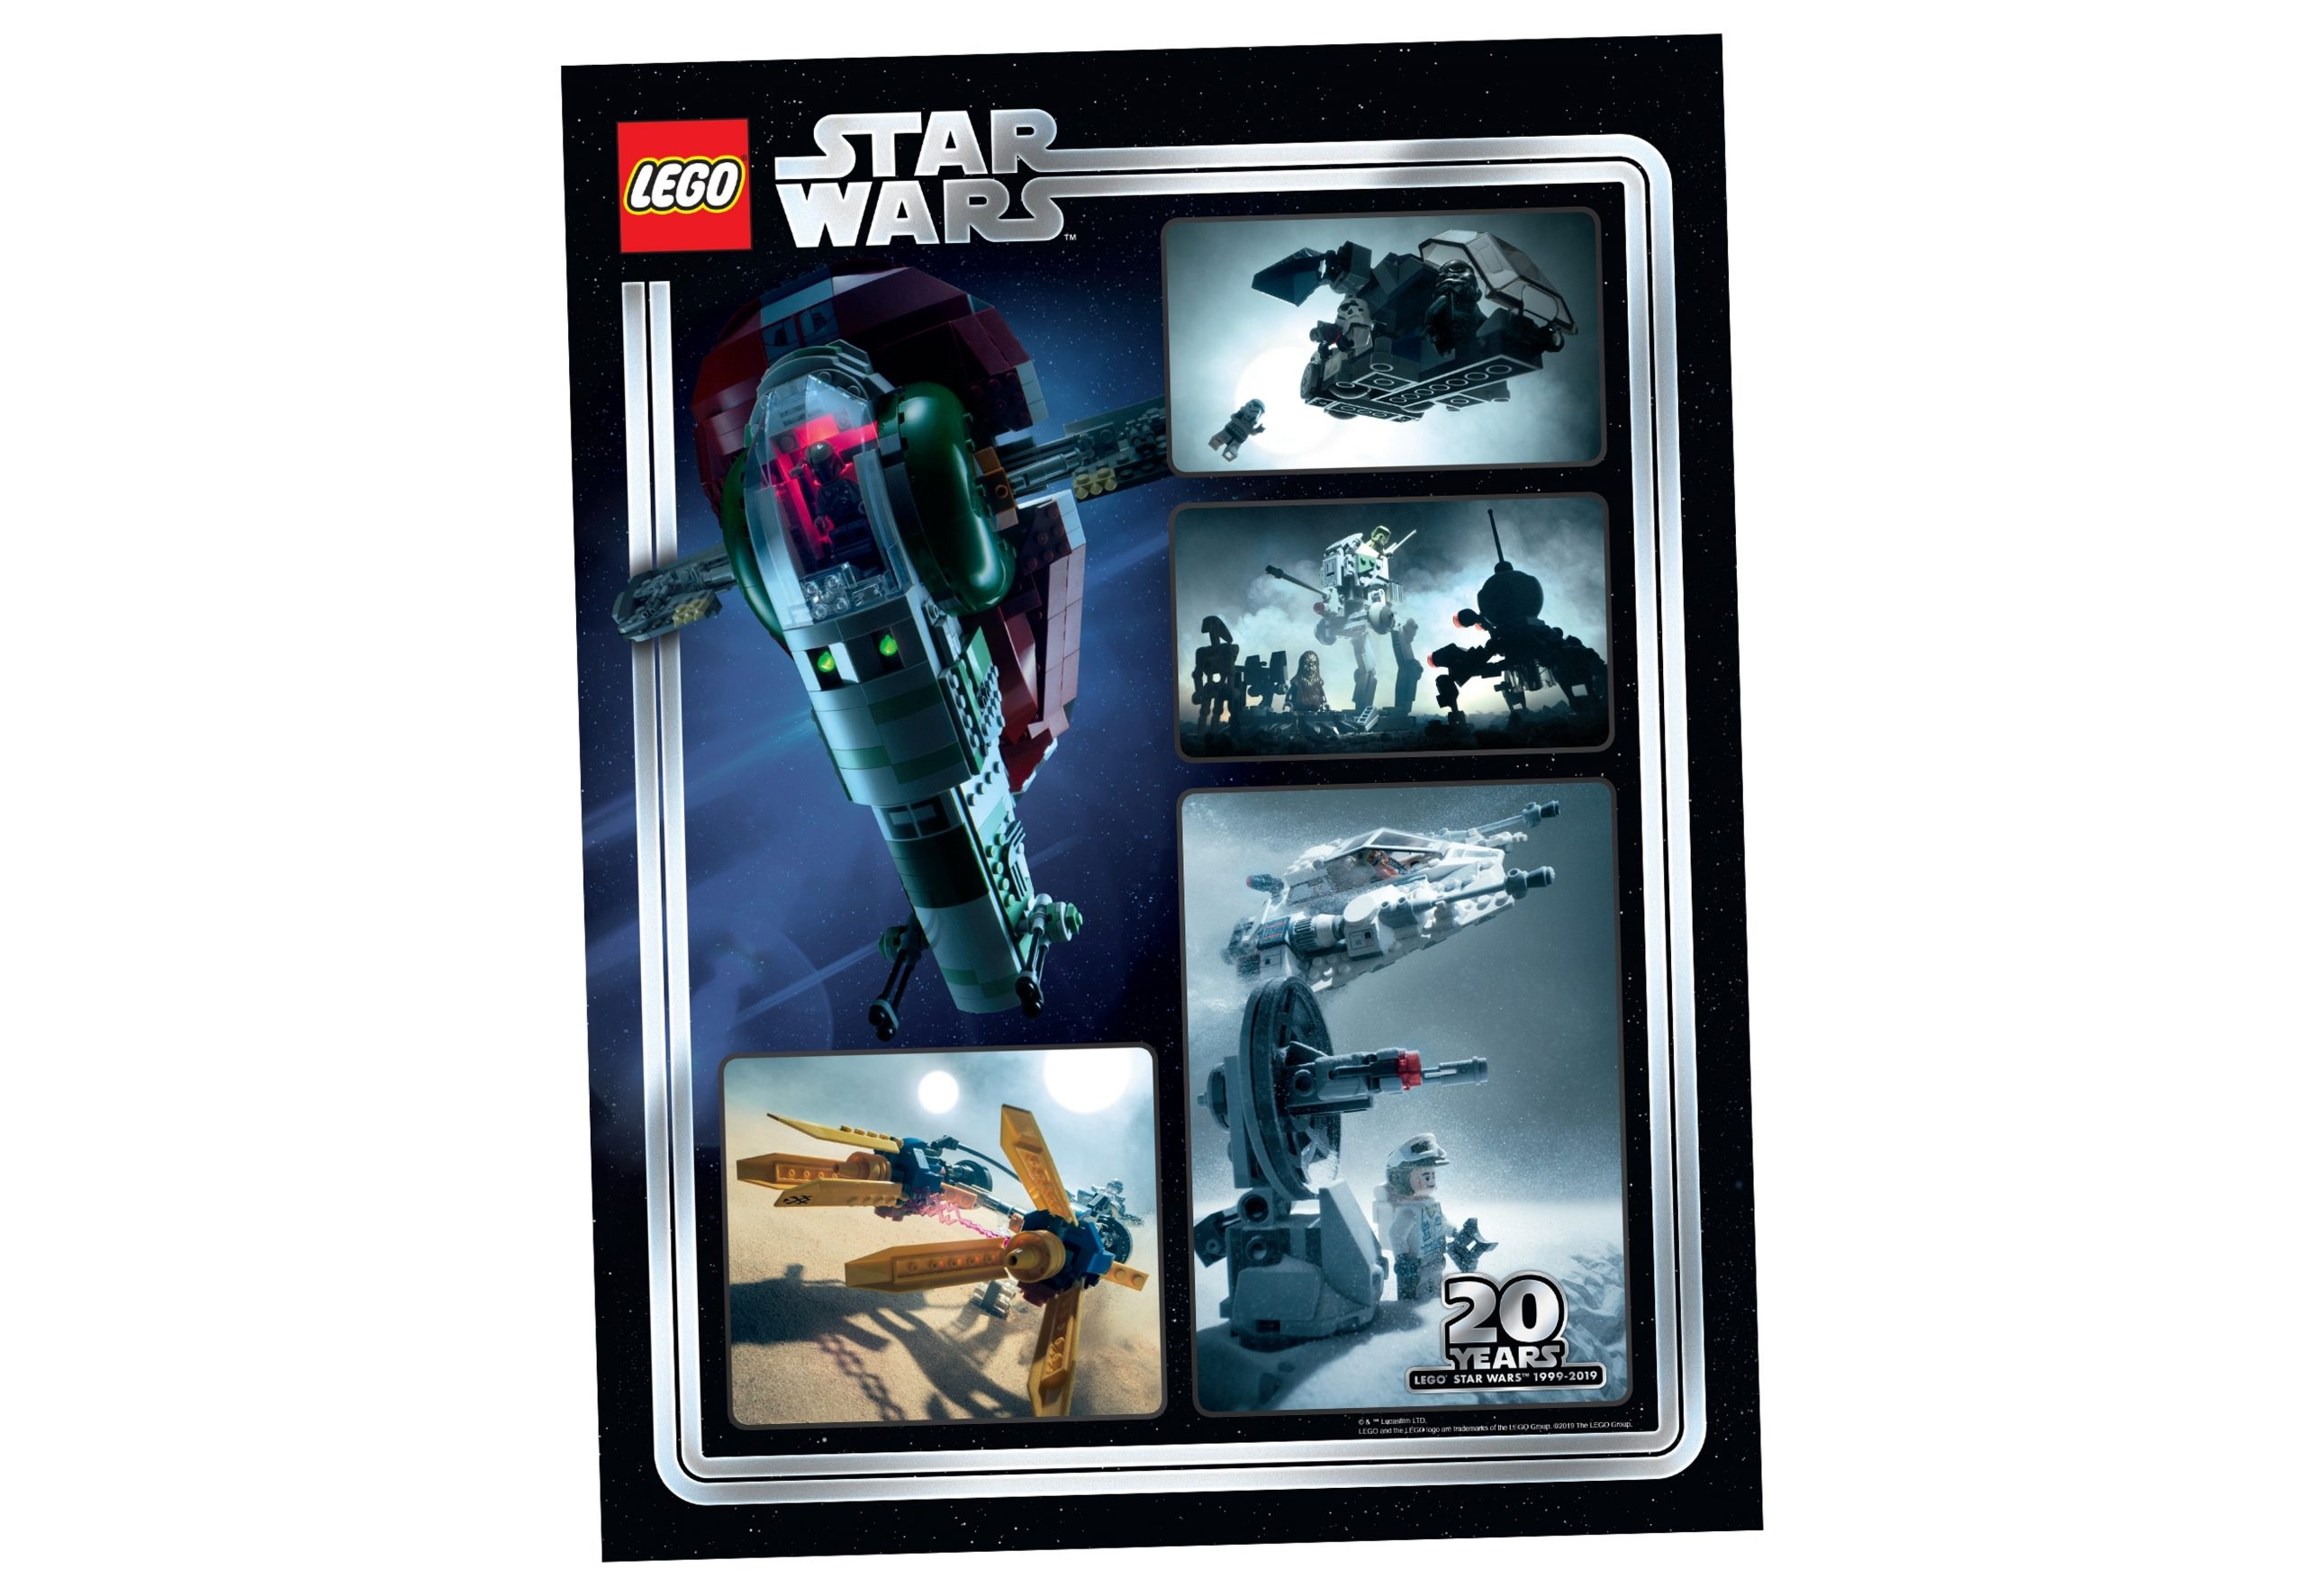 lego 5005888 collectible star wars 20th anniversary art print scaled